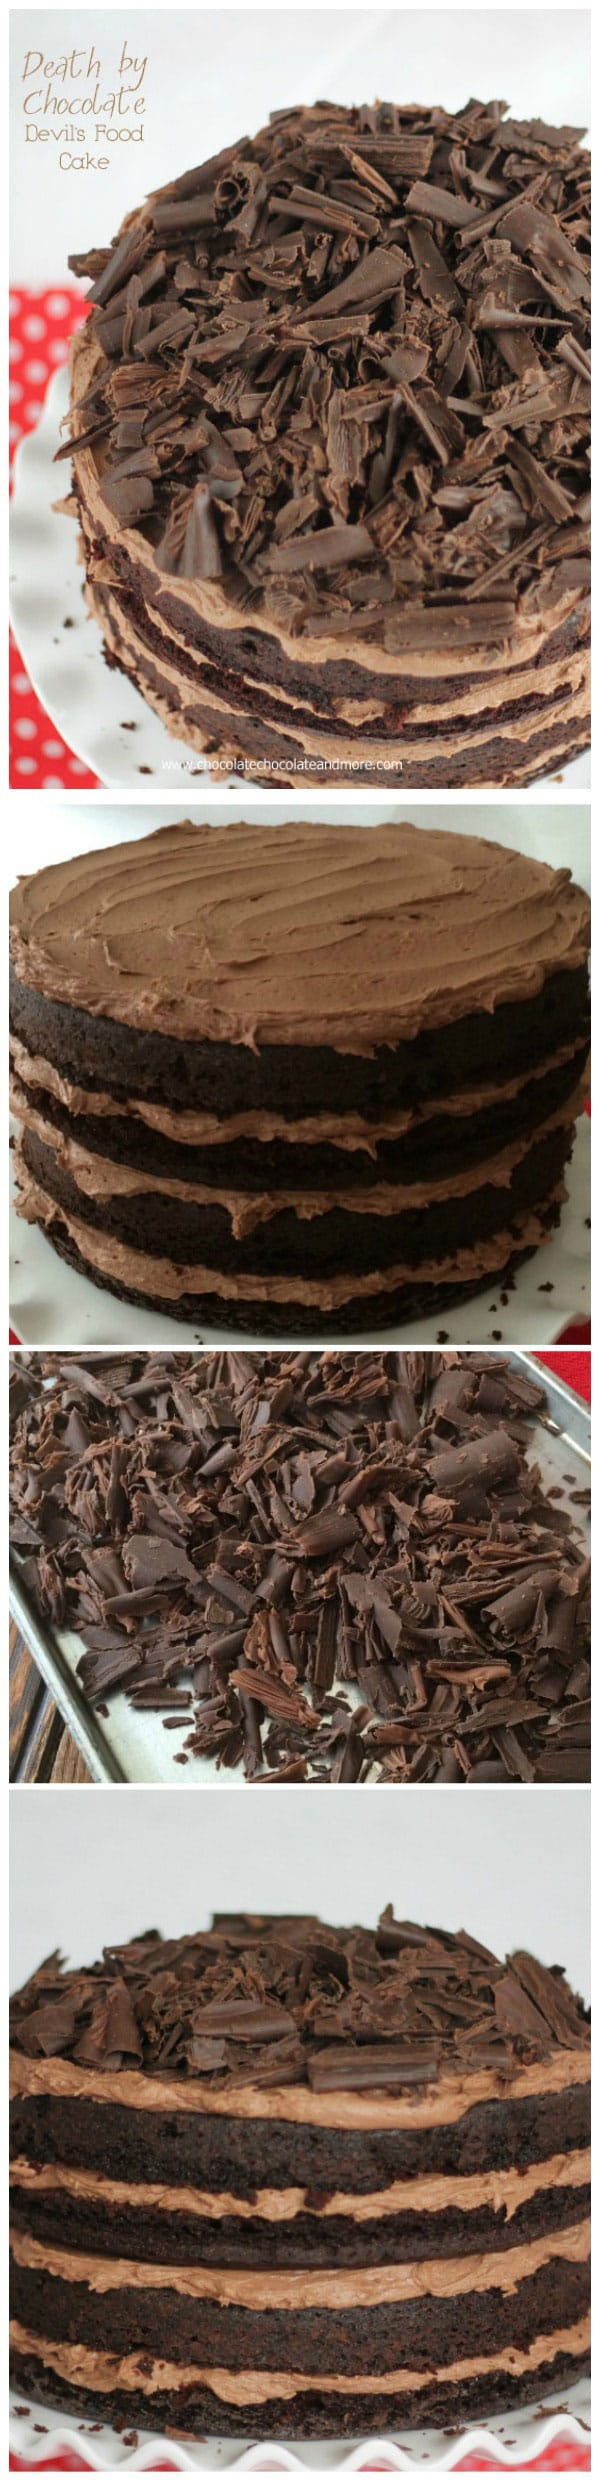 Death By Chocolate Cake Allrecipes